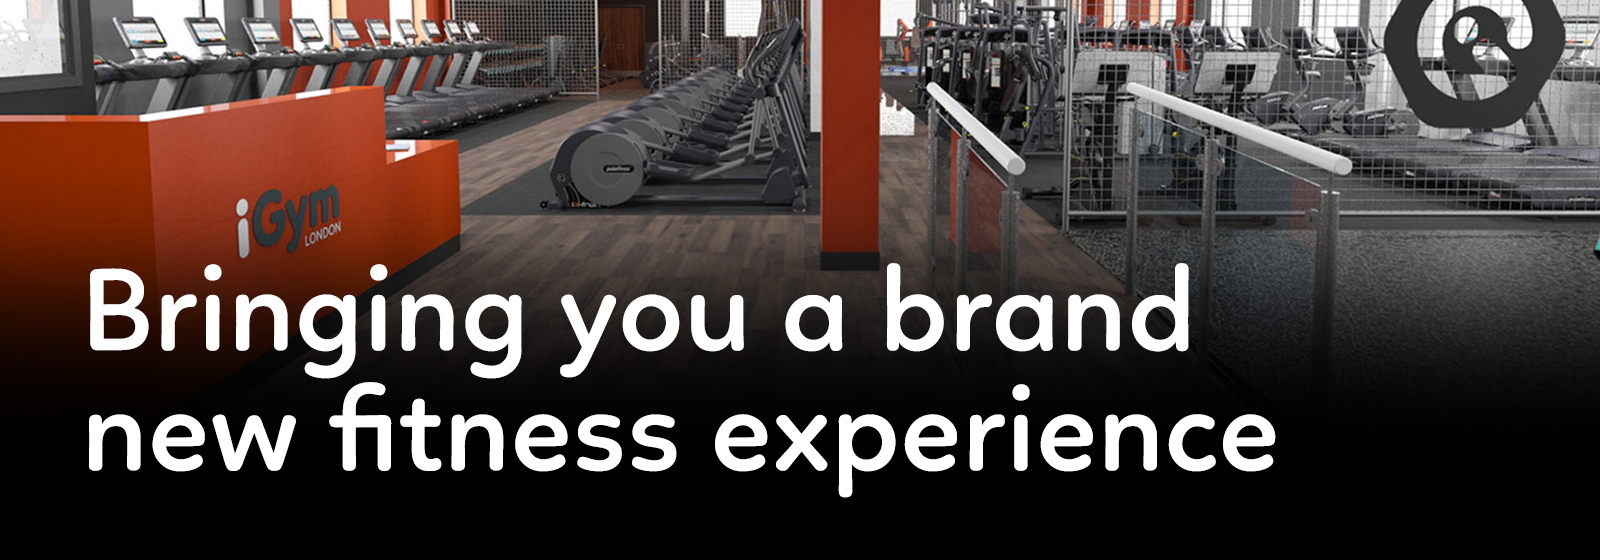 igym_new_fitness_experience